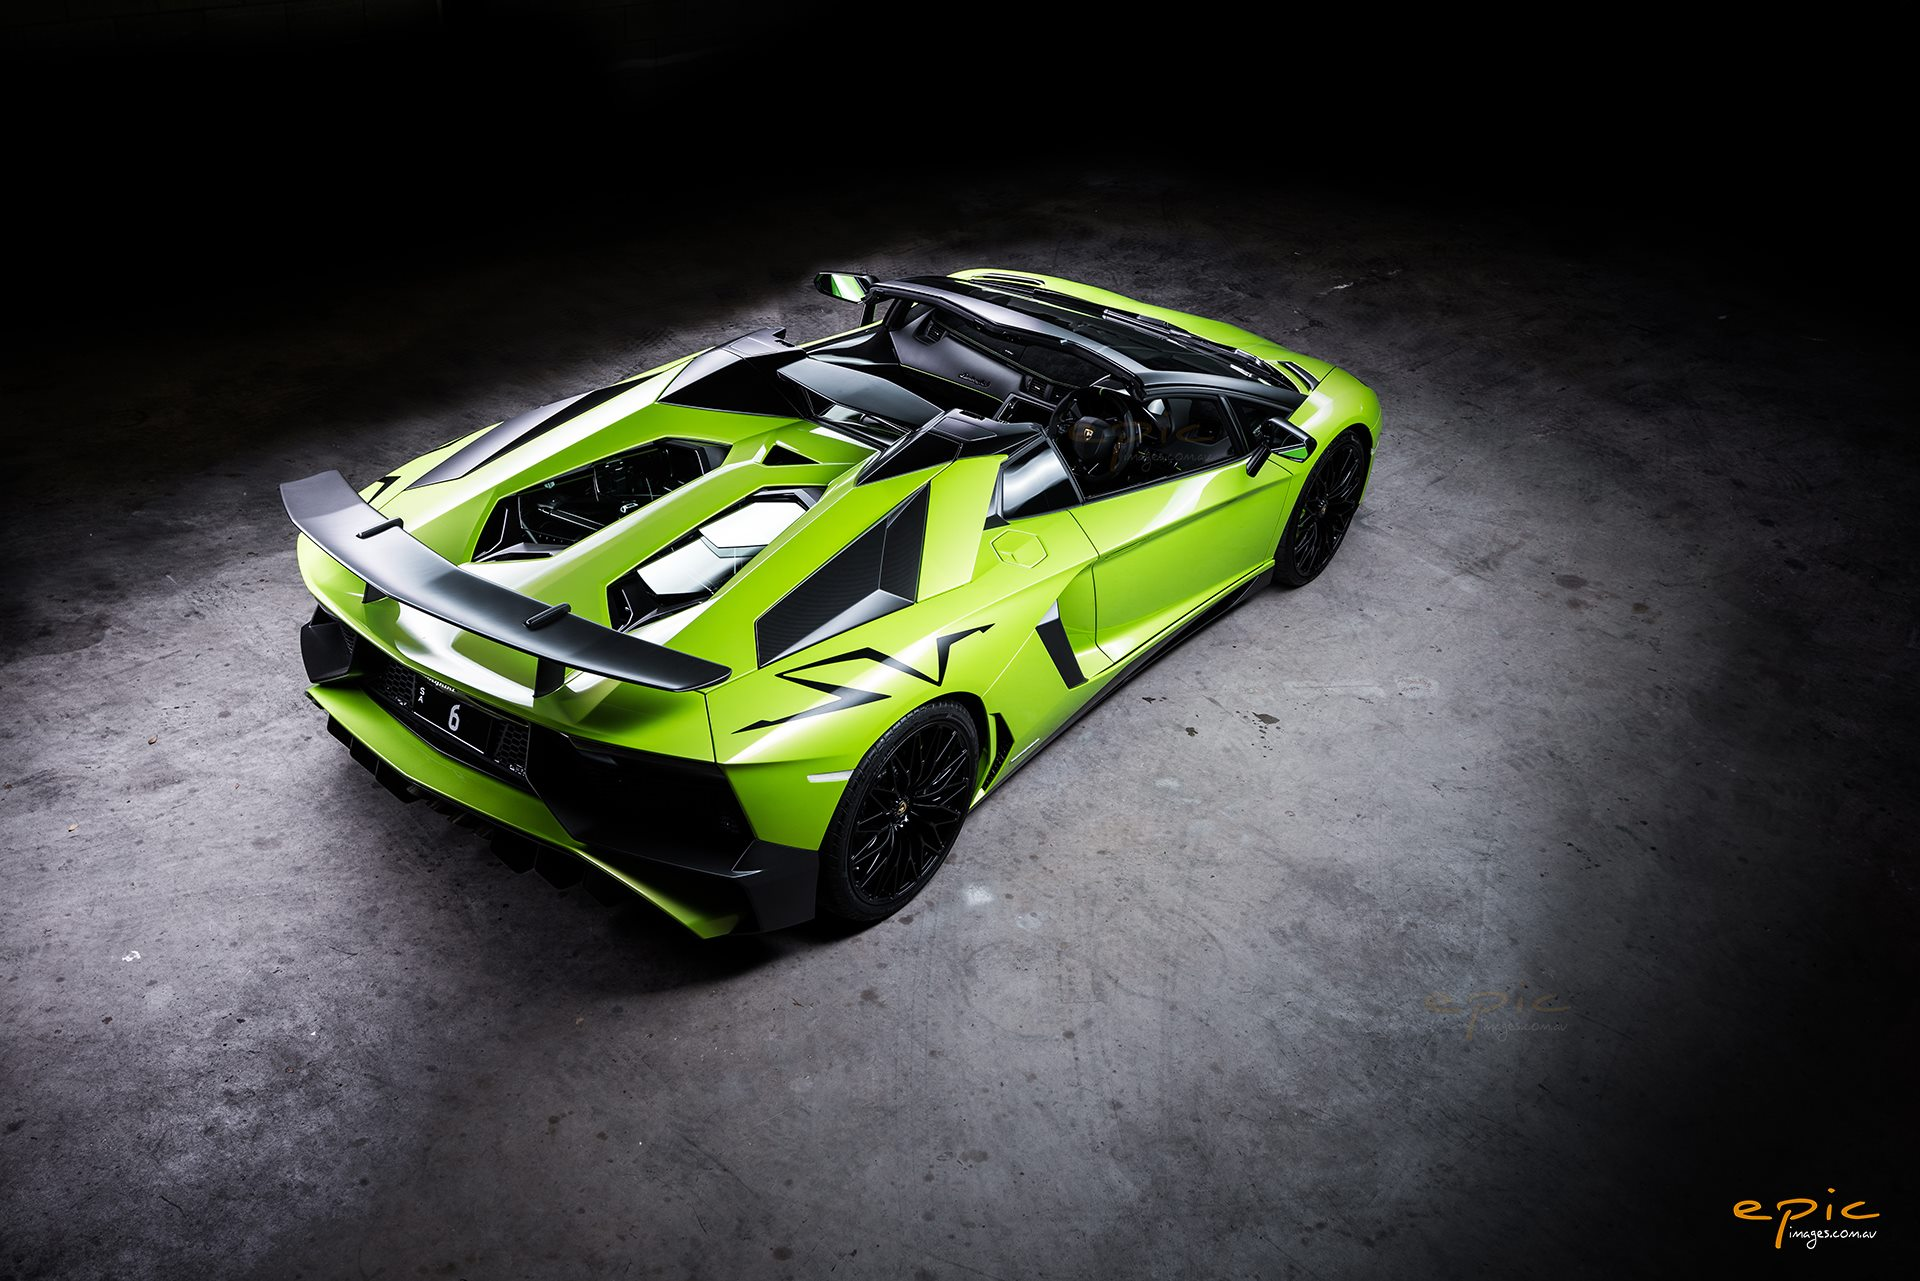 lamborghini, sv, aventador, roadster, car bra, stone chip film, paint protection film, winguard, adelaide, matte paint, car wrap, matt paint, XPEL, Ultimate, Stealth, expert wrap, xpel, suntek, opticoat, stek, 3m, adelaide paint protection